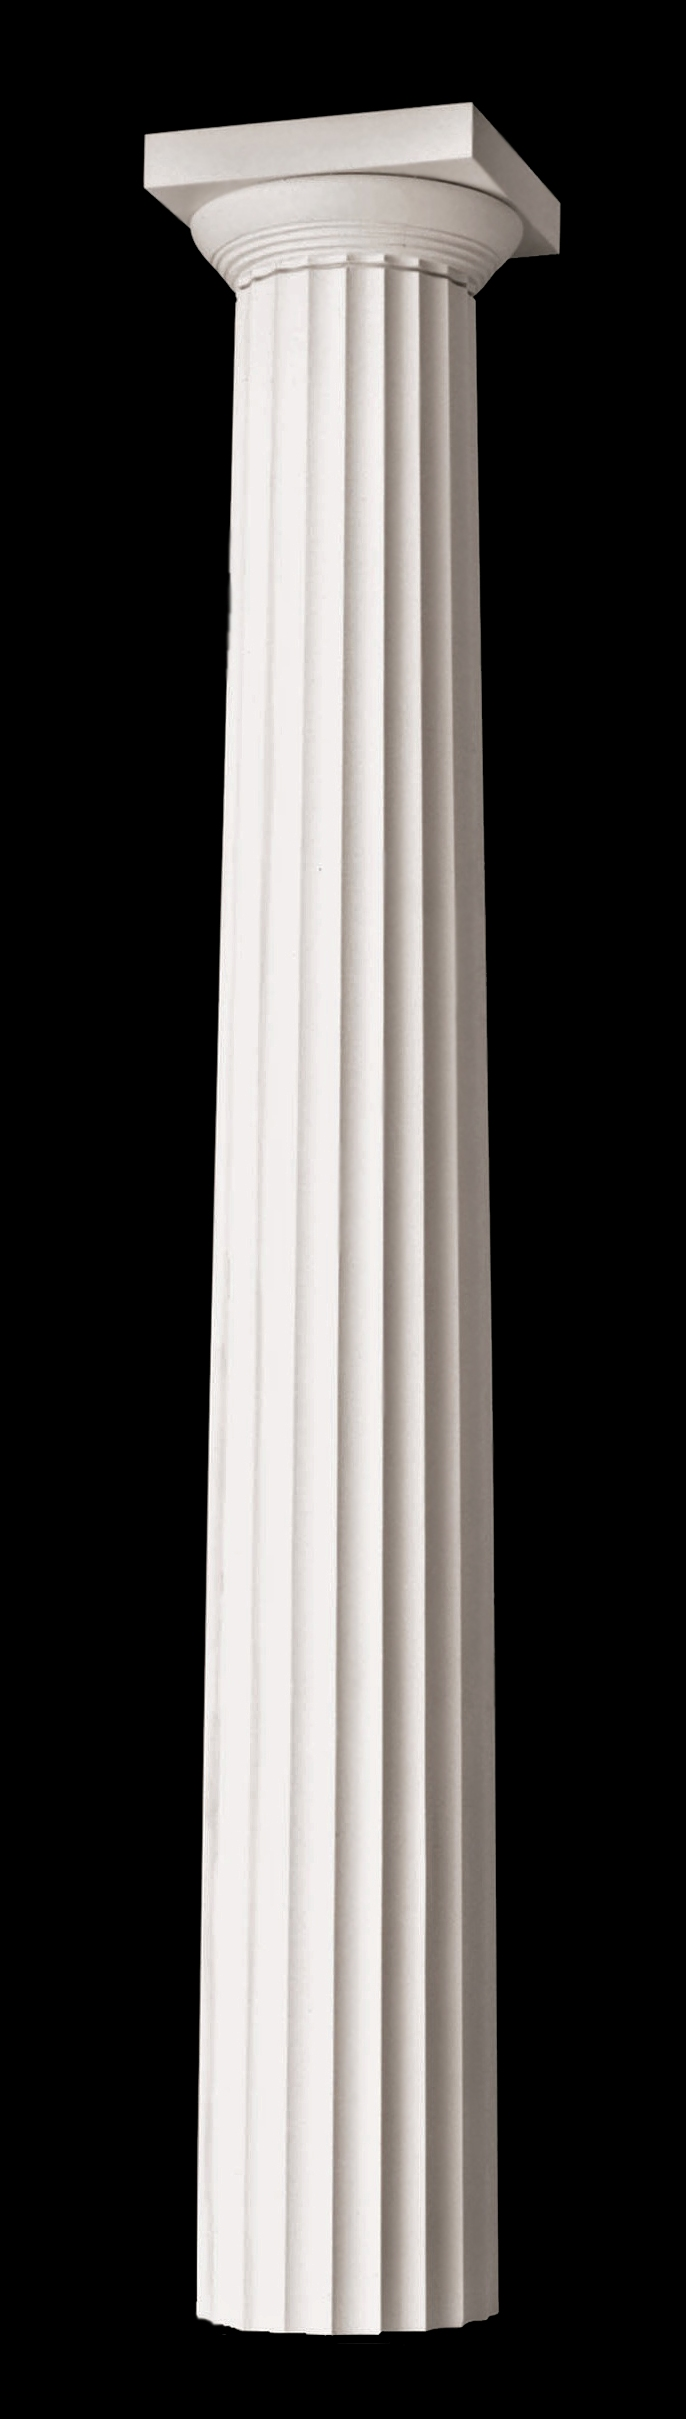 Fluted Architectural Greek Doric Wood Columns Chadsworth